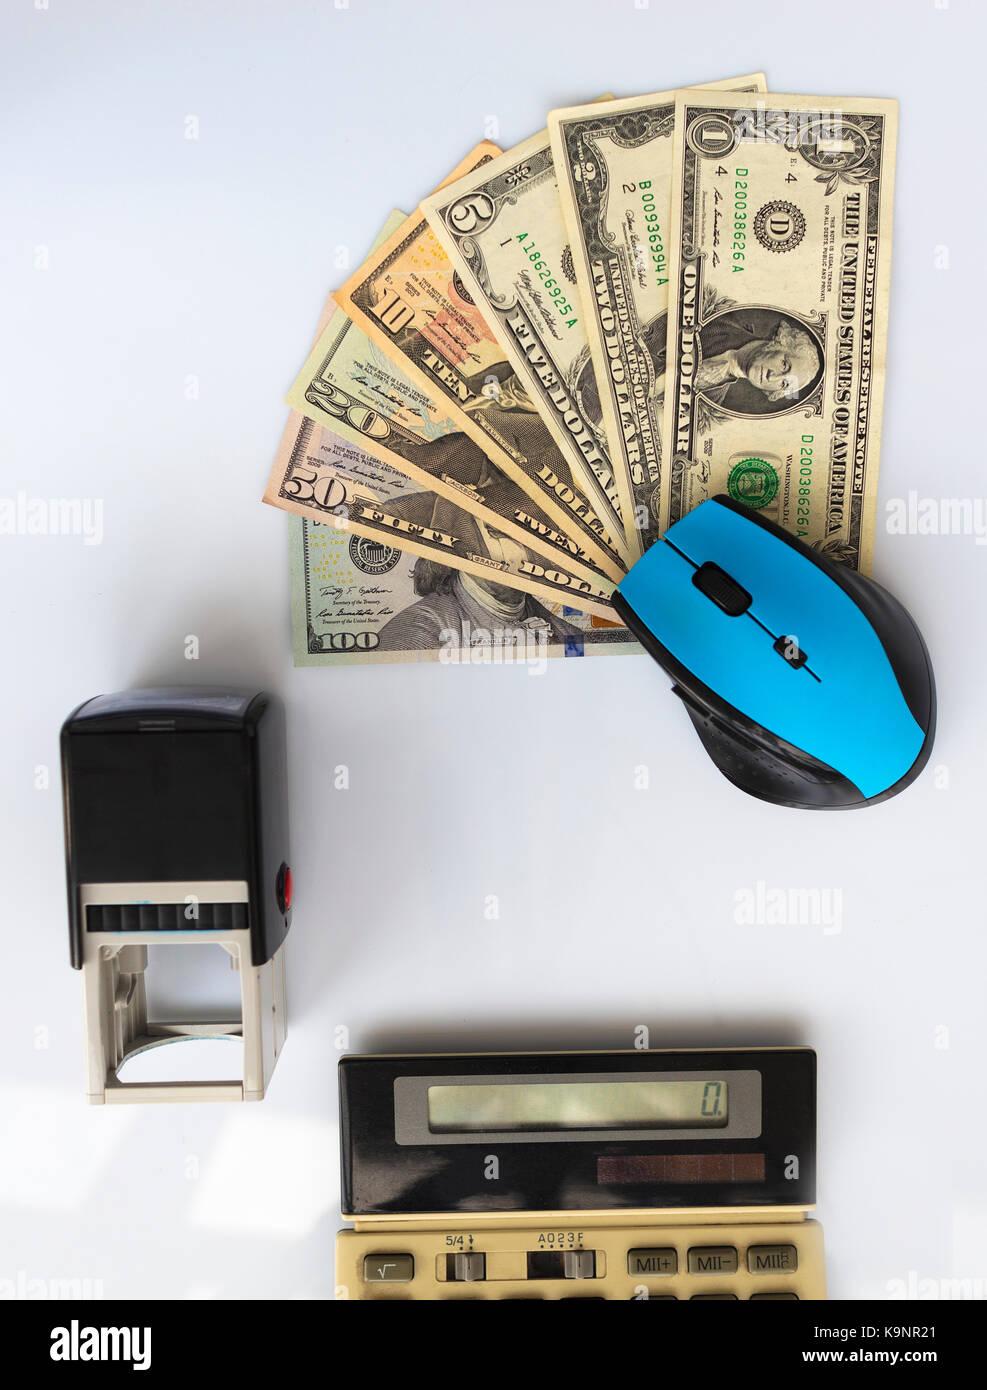 Business concept: computer mouse, seal, old calculator, money located opposite each other on a white background Stock Photo